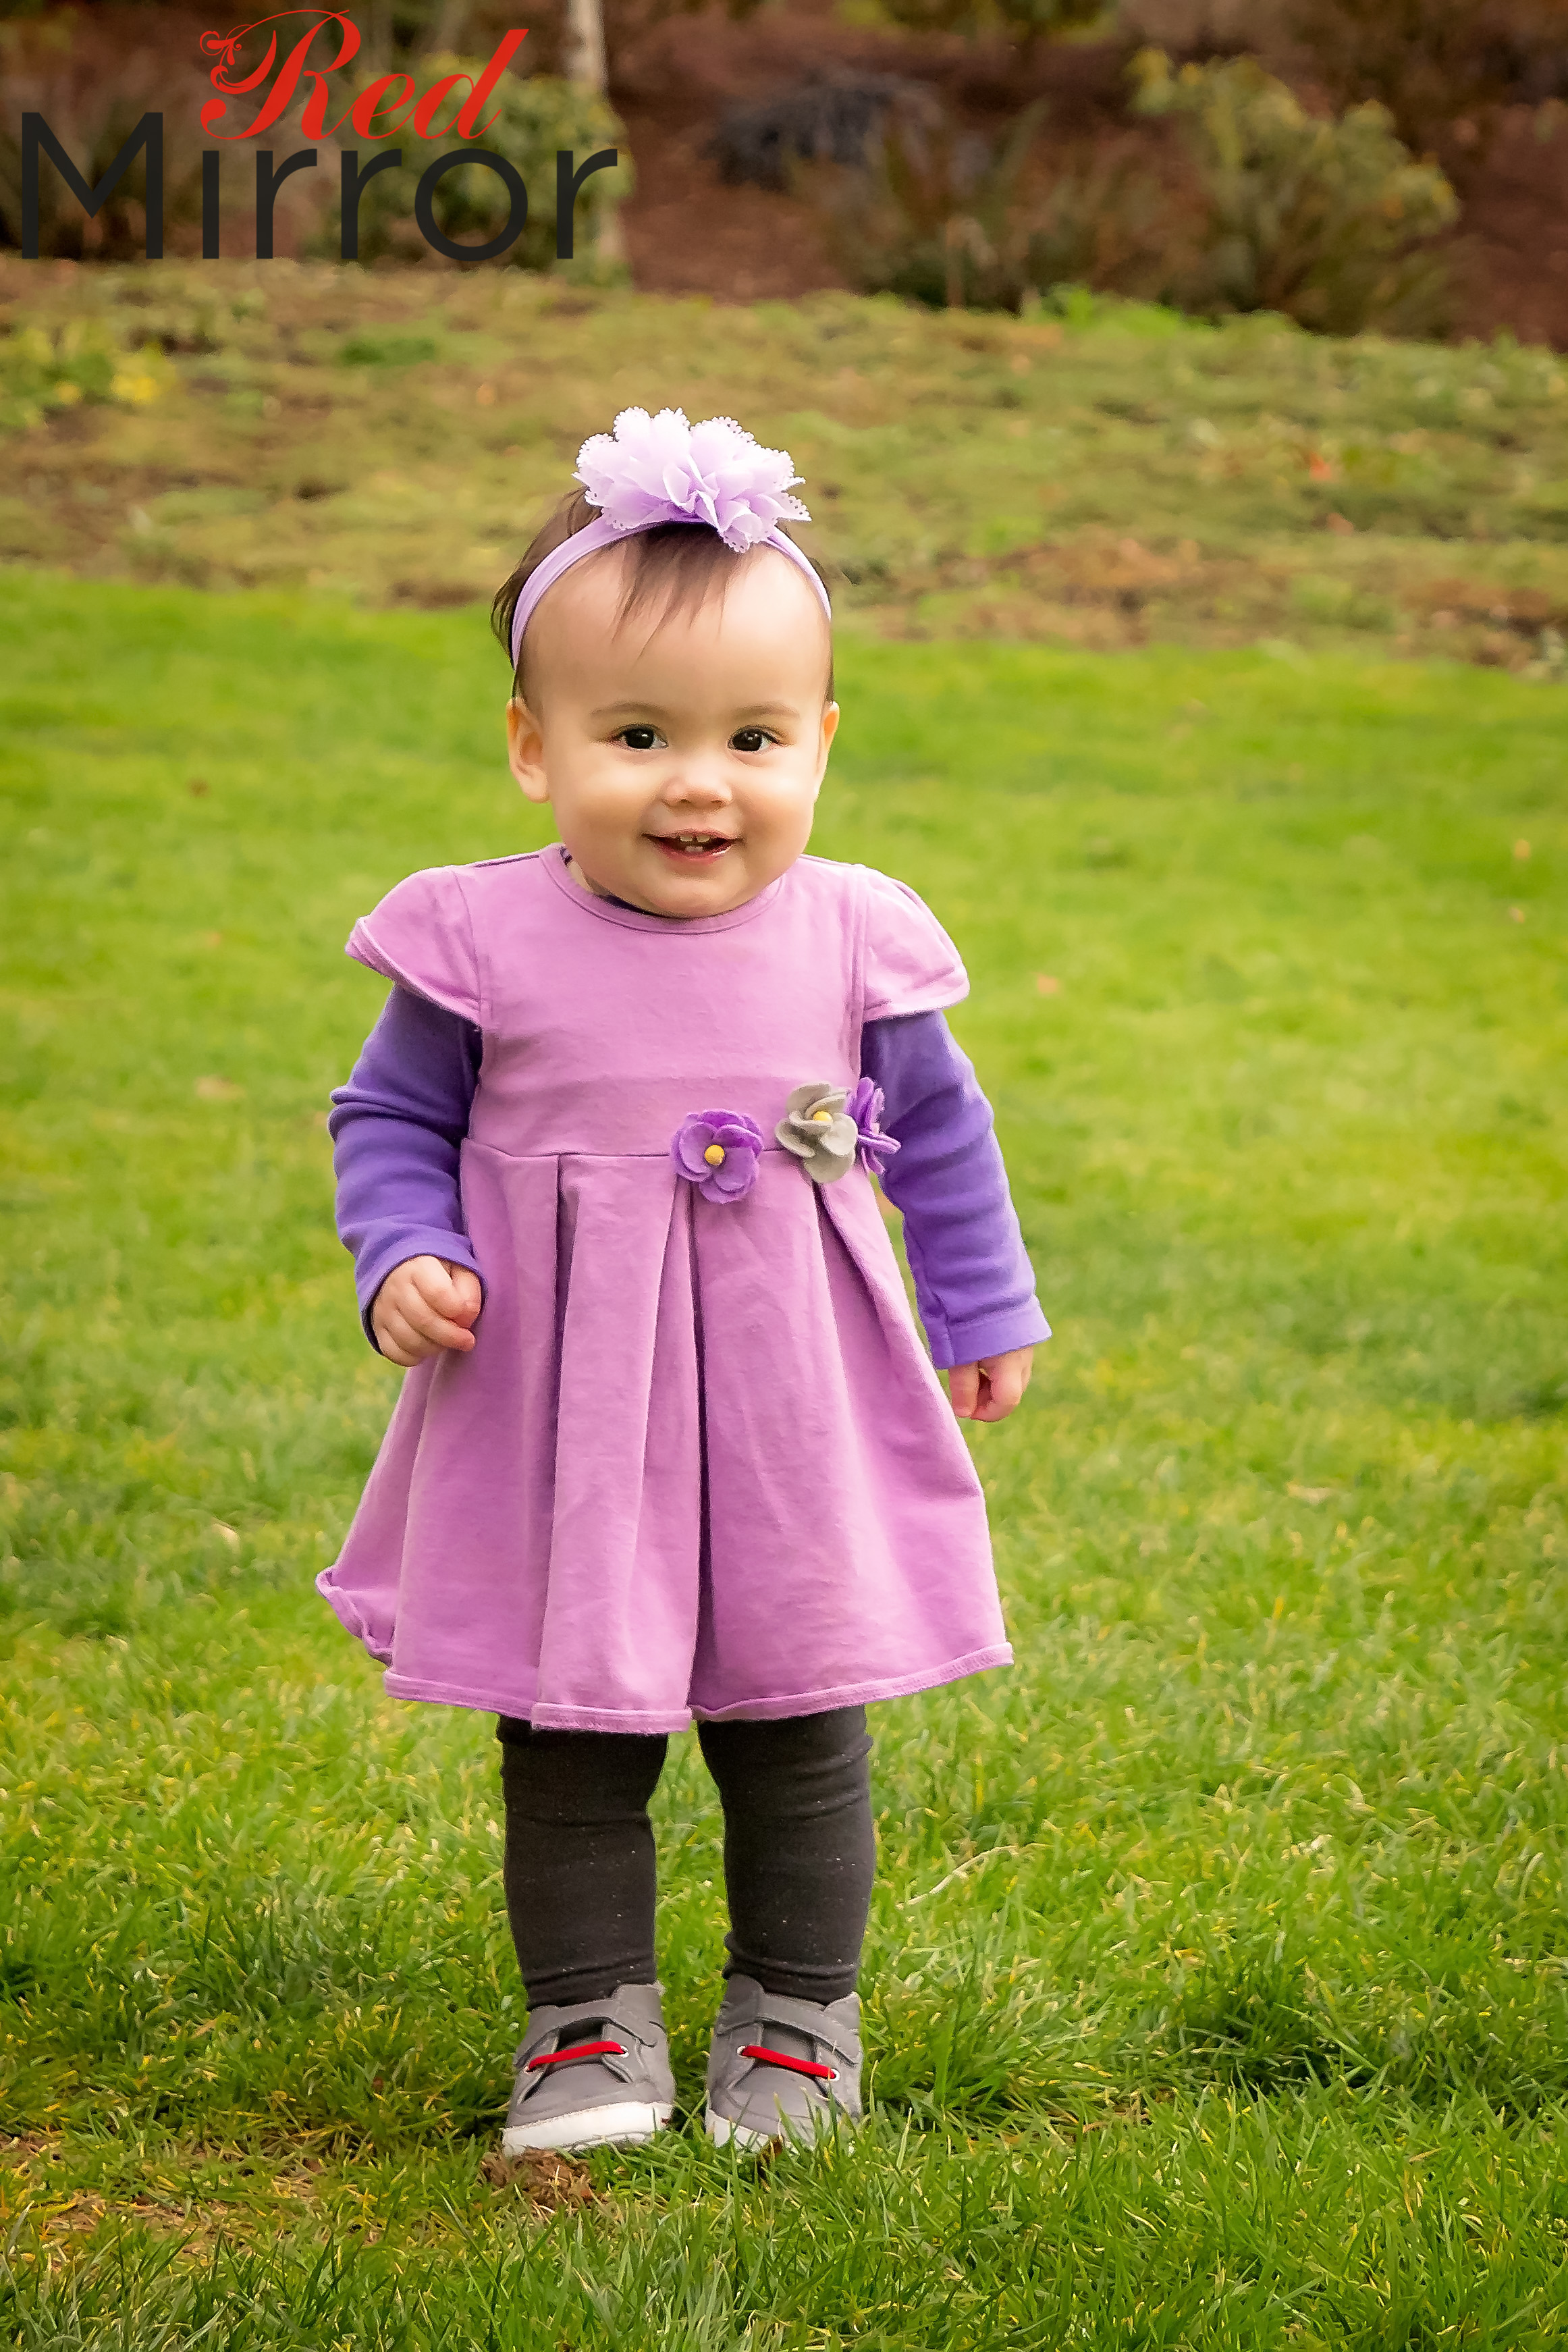 Little girl in a pink and purple dress with a flower headband